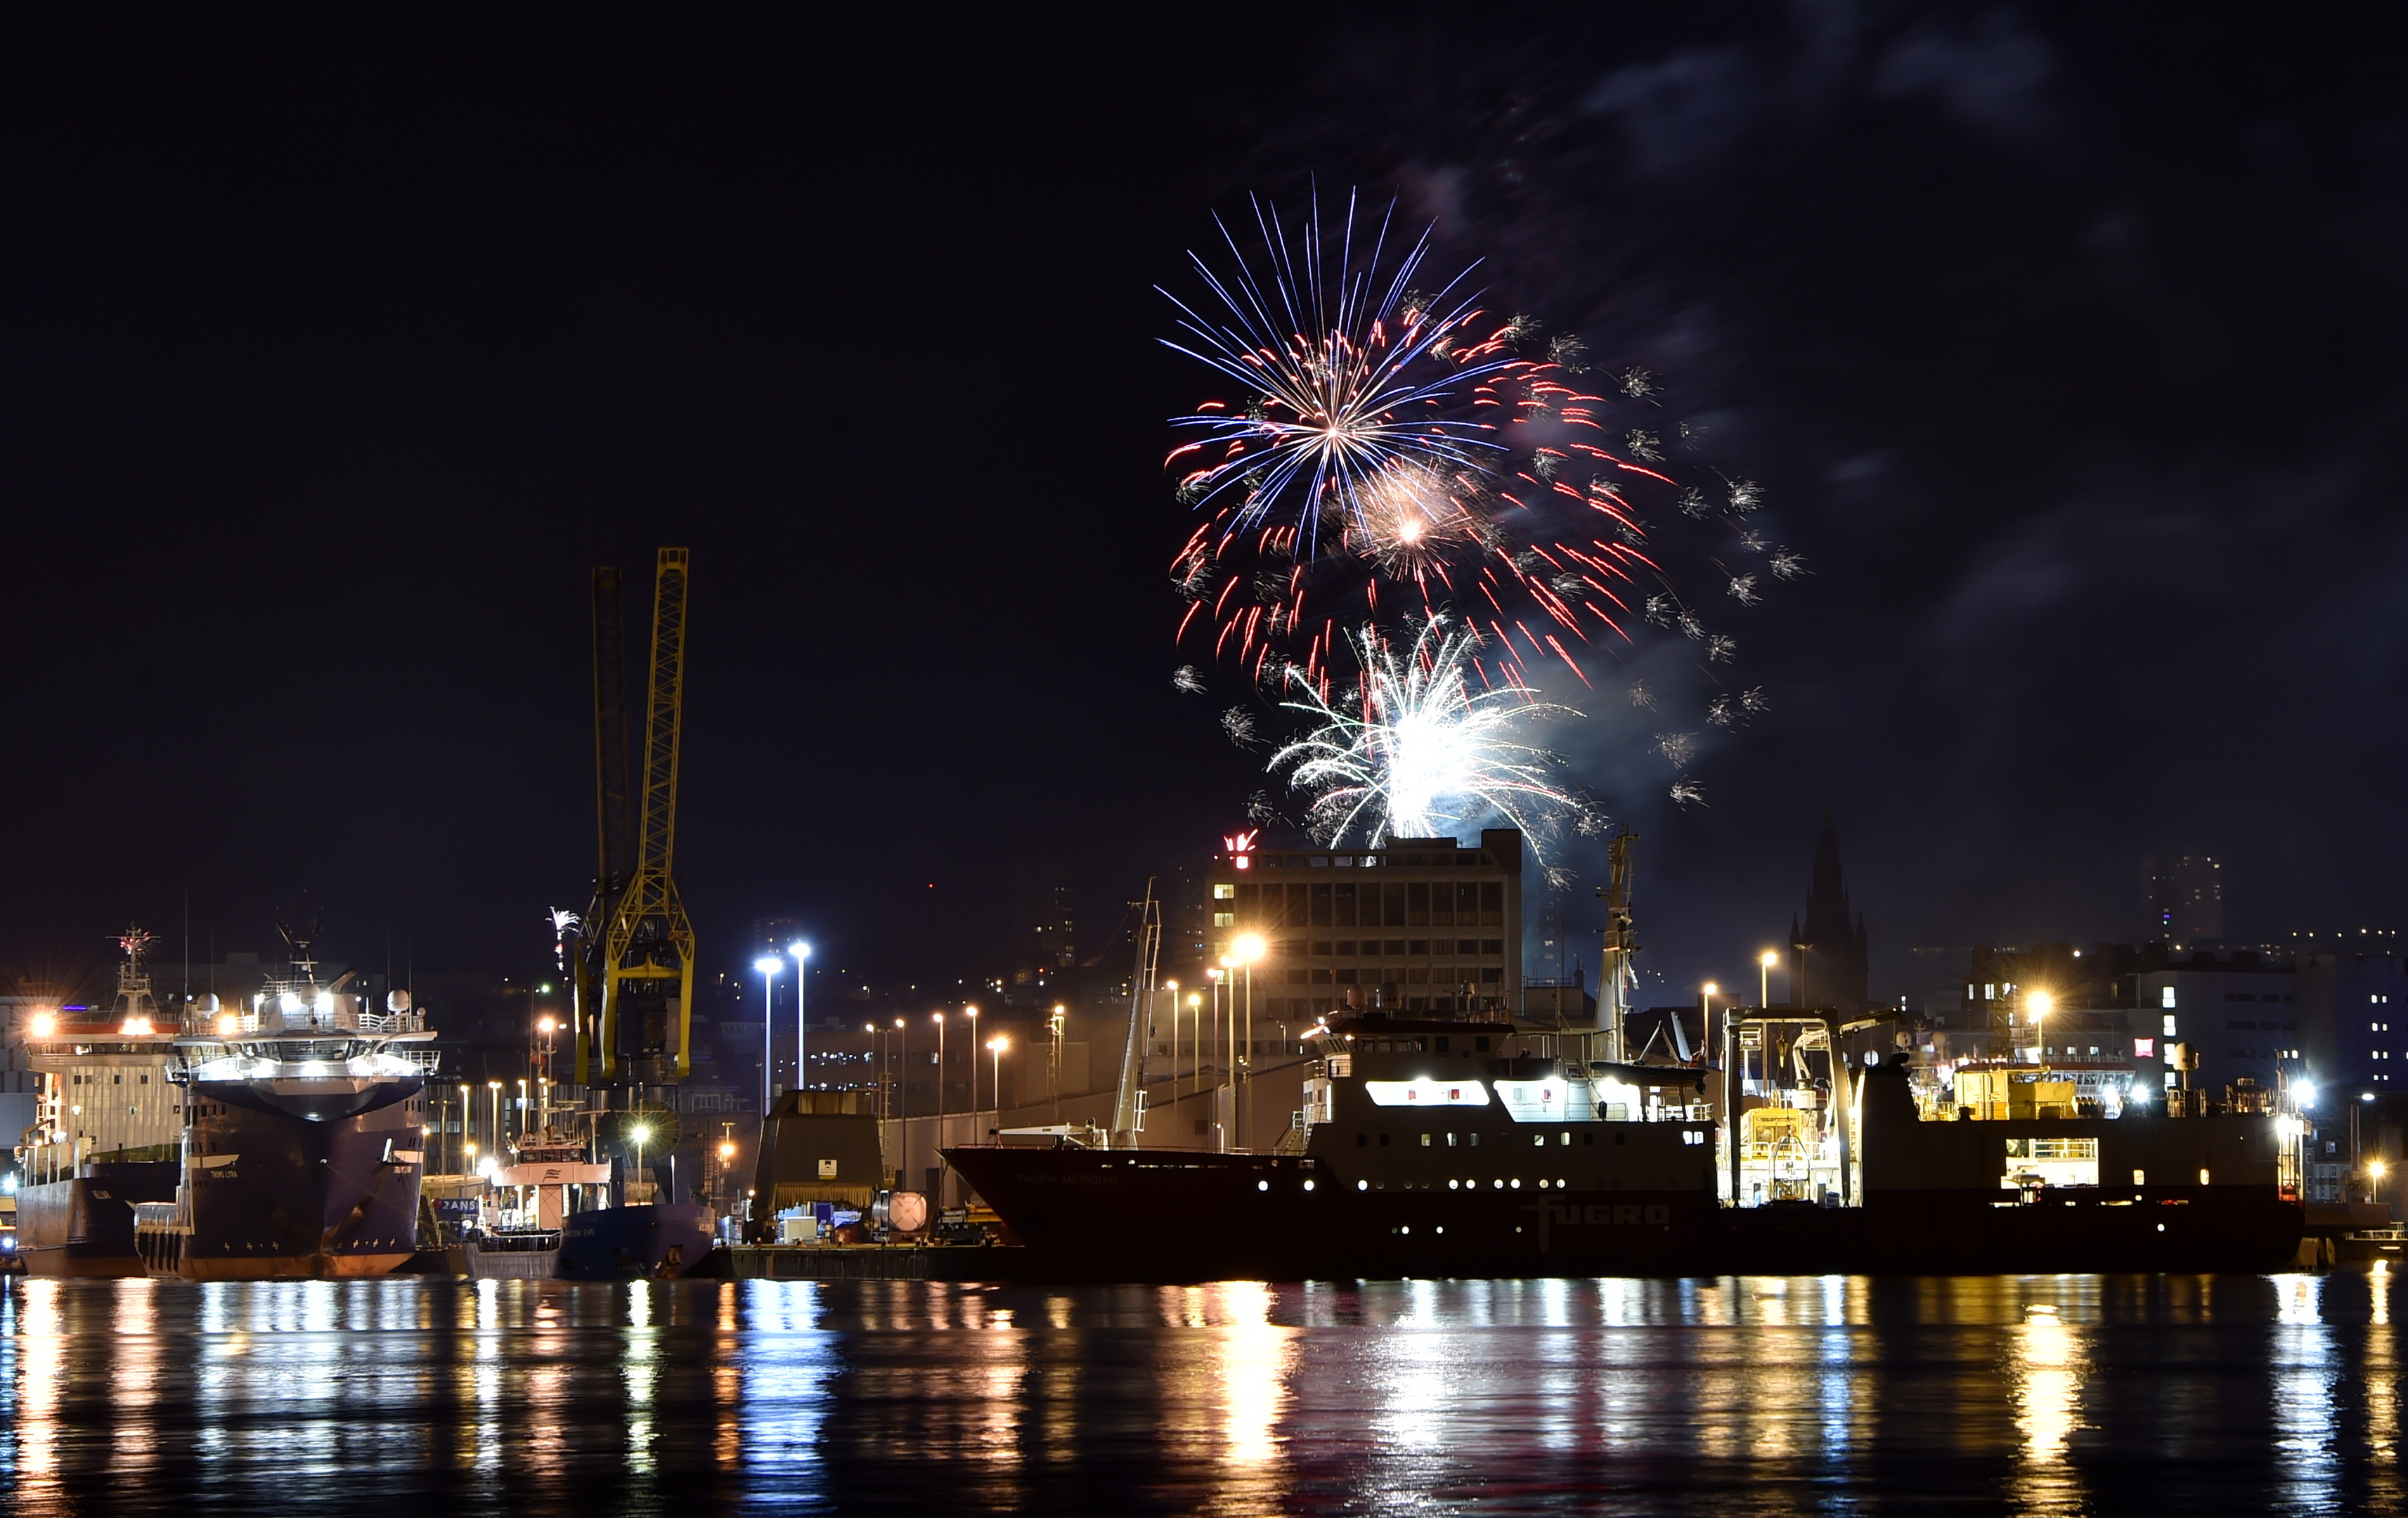 Fireworks over Aberdeen as viewed from the harbour